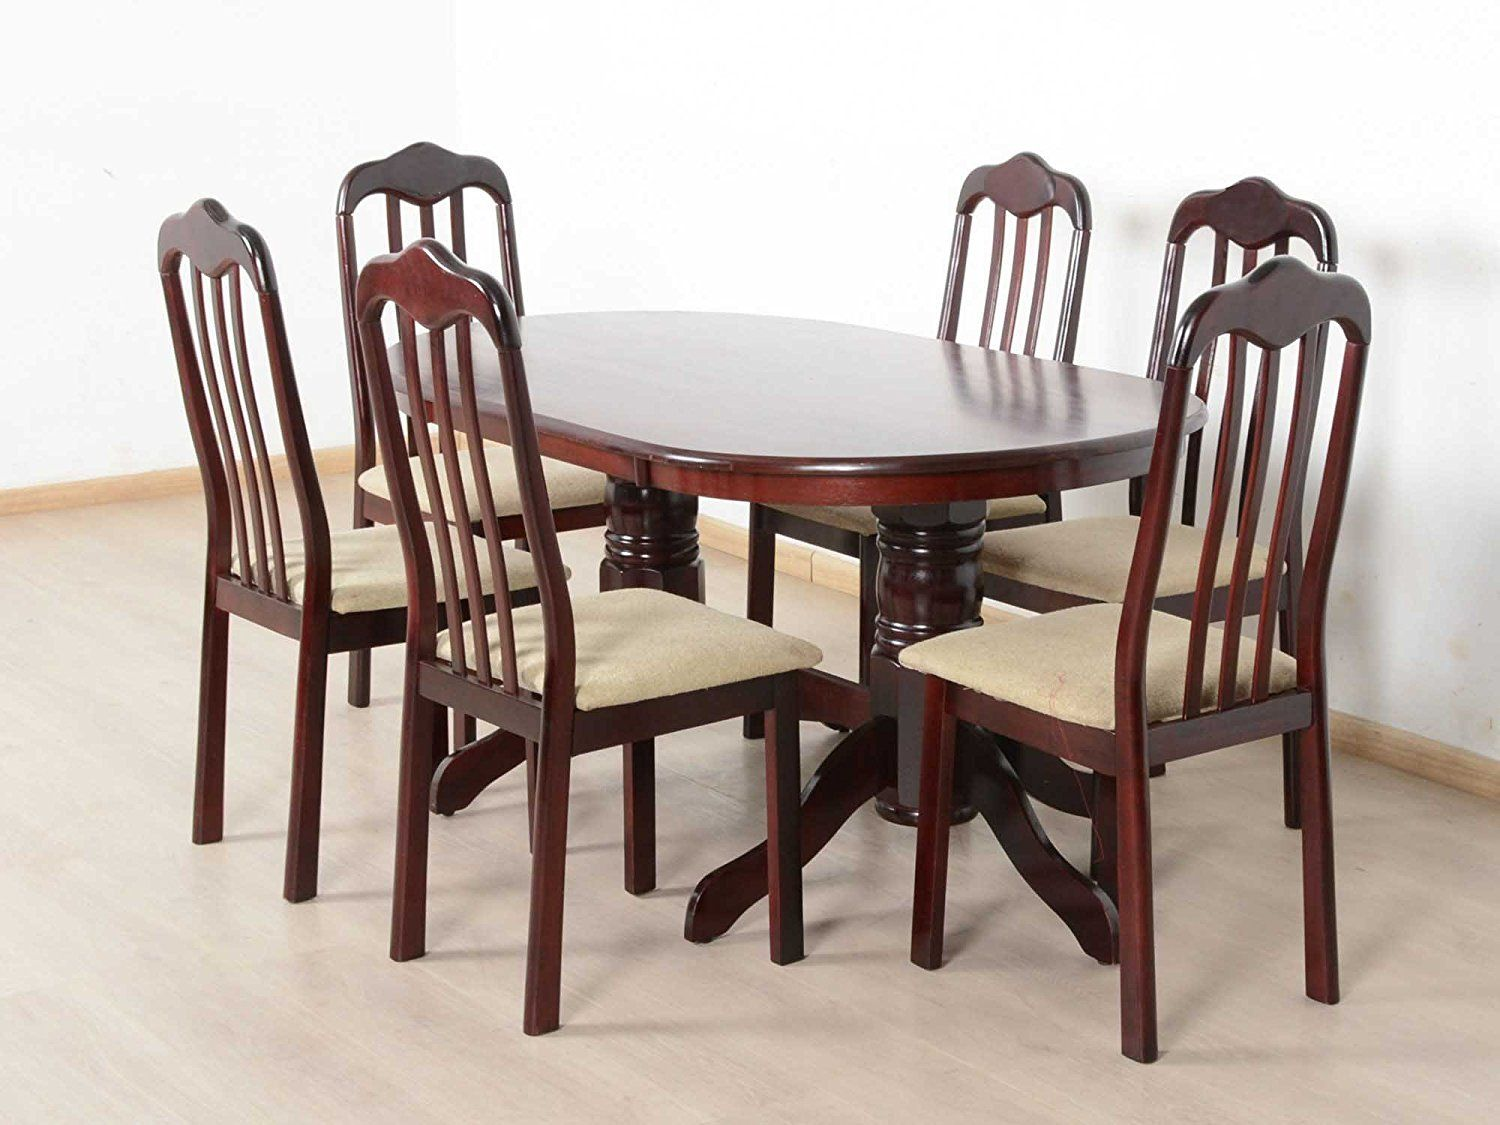 T2a Livez Six Seater Dining Table Set Oval Shaped